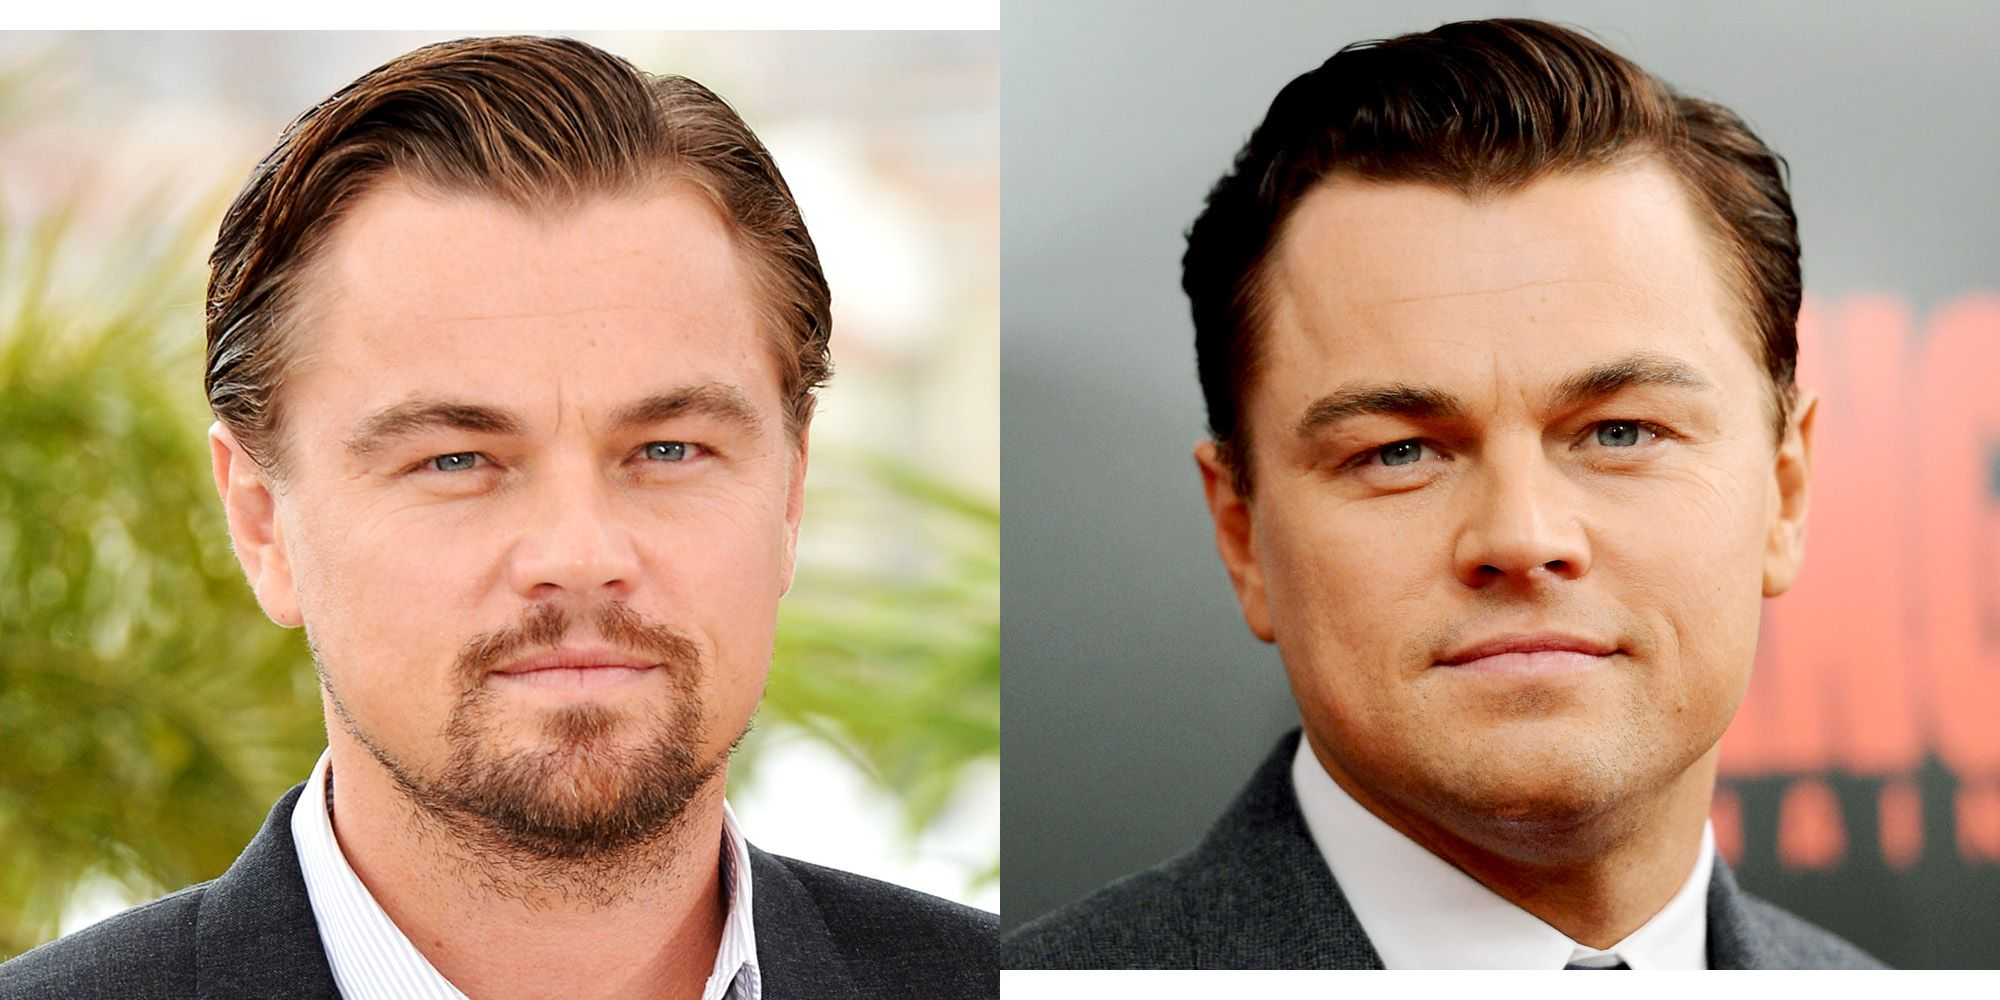 Do These Celebs Look Better With or Without Facial Hair?